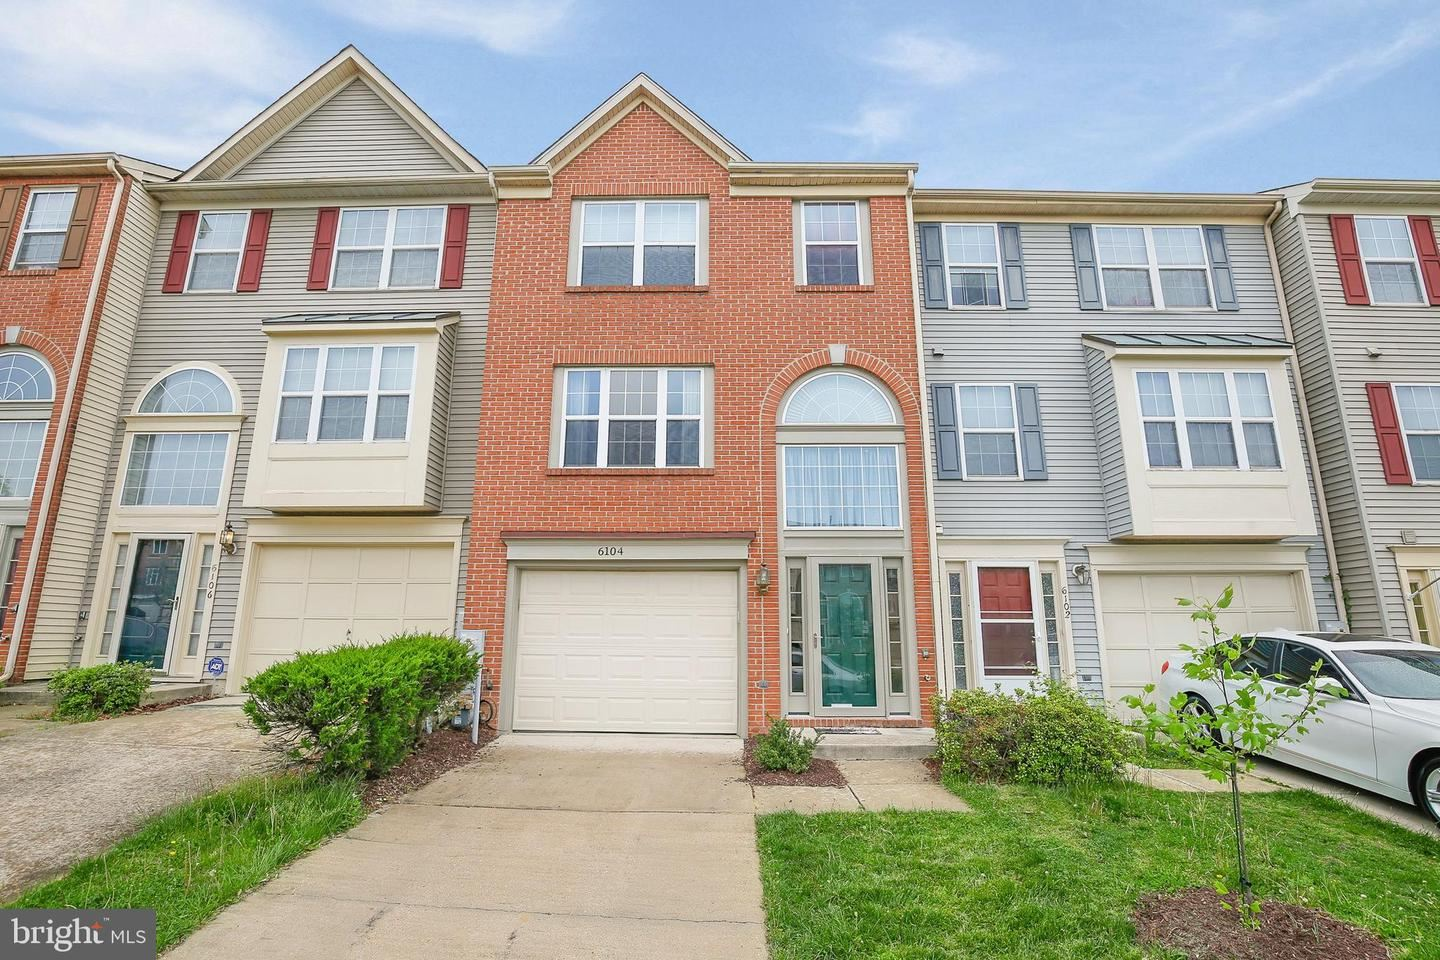 6104 HONEYCOMB GATE, Columbia, MD 21045 - MLS#: MDHW293594